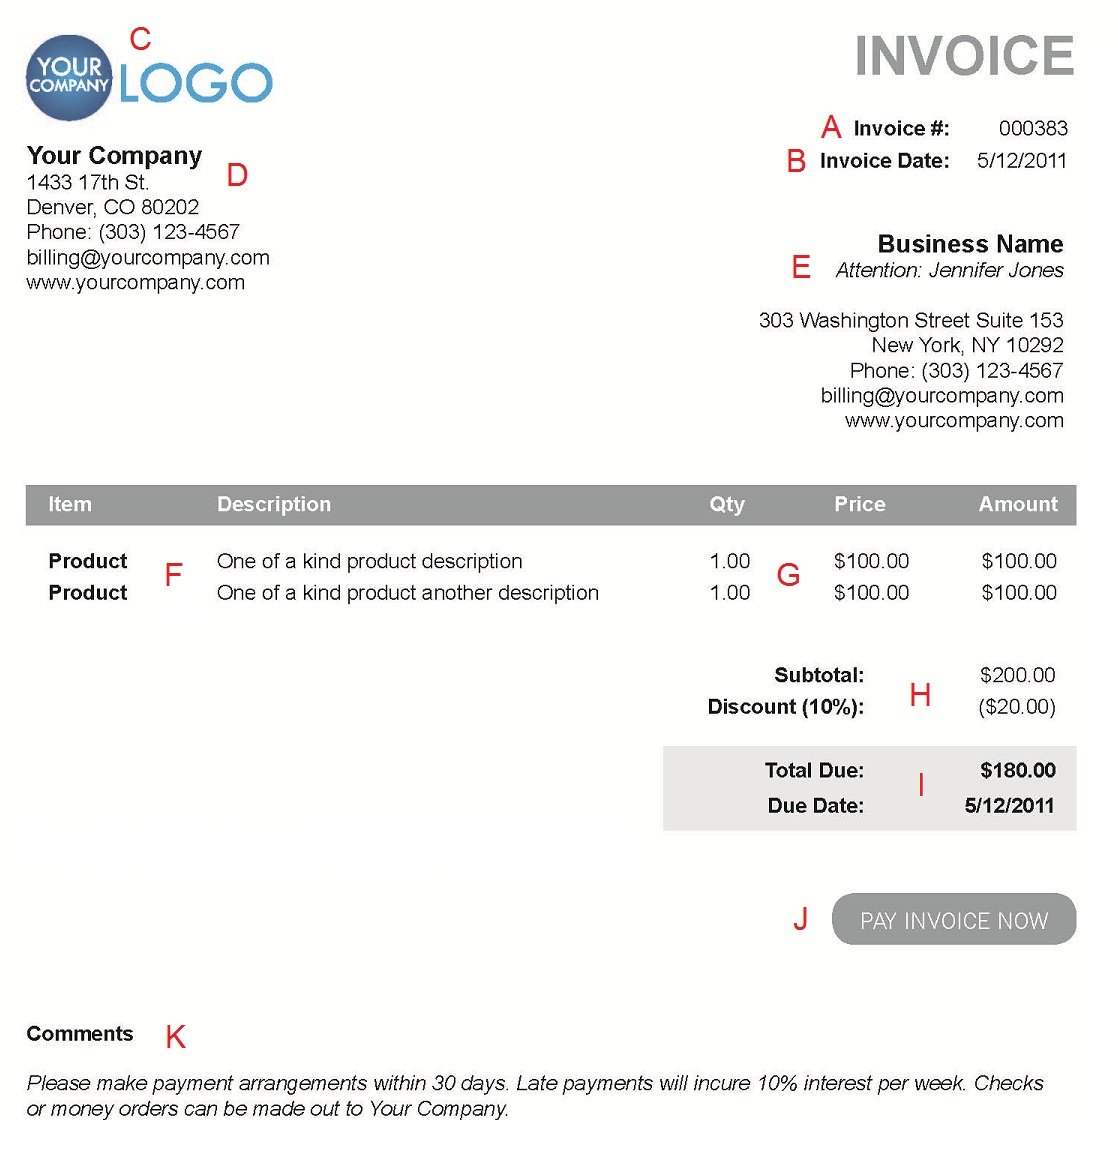 Coolmathgamesus  Pretty The  Different Sections Of An Electronic Payment Invoice With Lovable A  With Comely Vat Invoicing Also How Do You Pay An Invoice In Addition Invoice Reminder Letter And Blank Commercial Invoice Form As Well As Mechanic Invoice Template Free Additionally Nissan Pathfinder Invoice Price From Paysimplecom With Coolmathgamesus  Lovable The  Different Sections Of An Electronic Payment Invoice With Comely A  And Pretty Vat Invoicing Also How Do You Pay An Invoice In Addition Invoice Reminder Letter From Paysimplecom